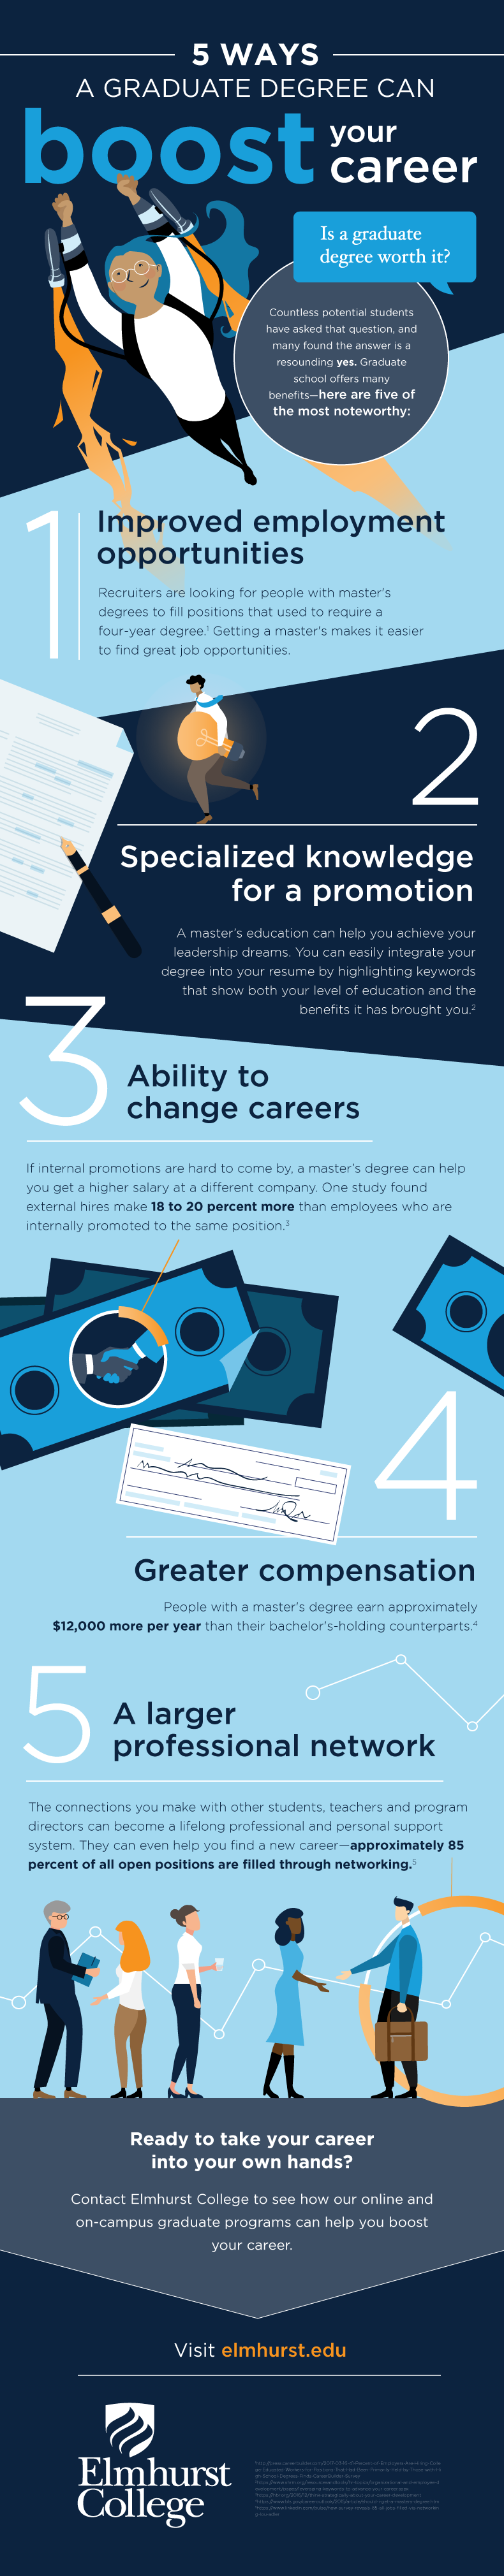 5 Ways a Graduate Degree Can Boost Your Career Infographic